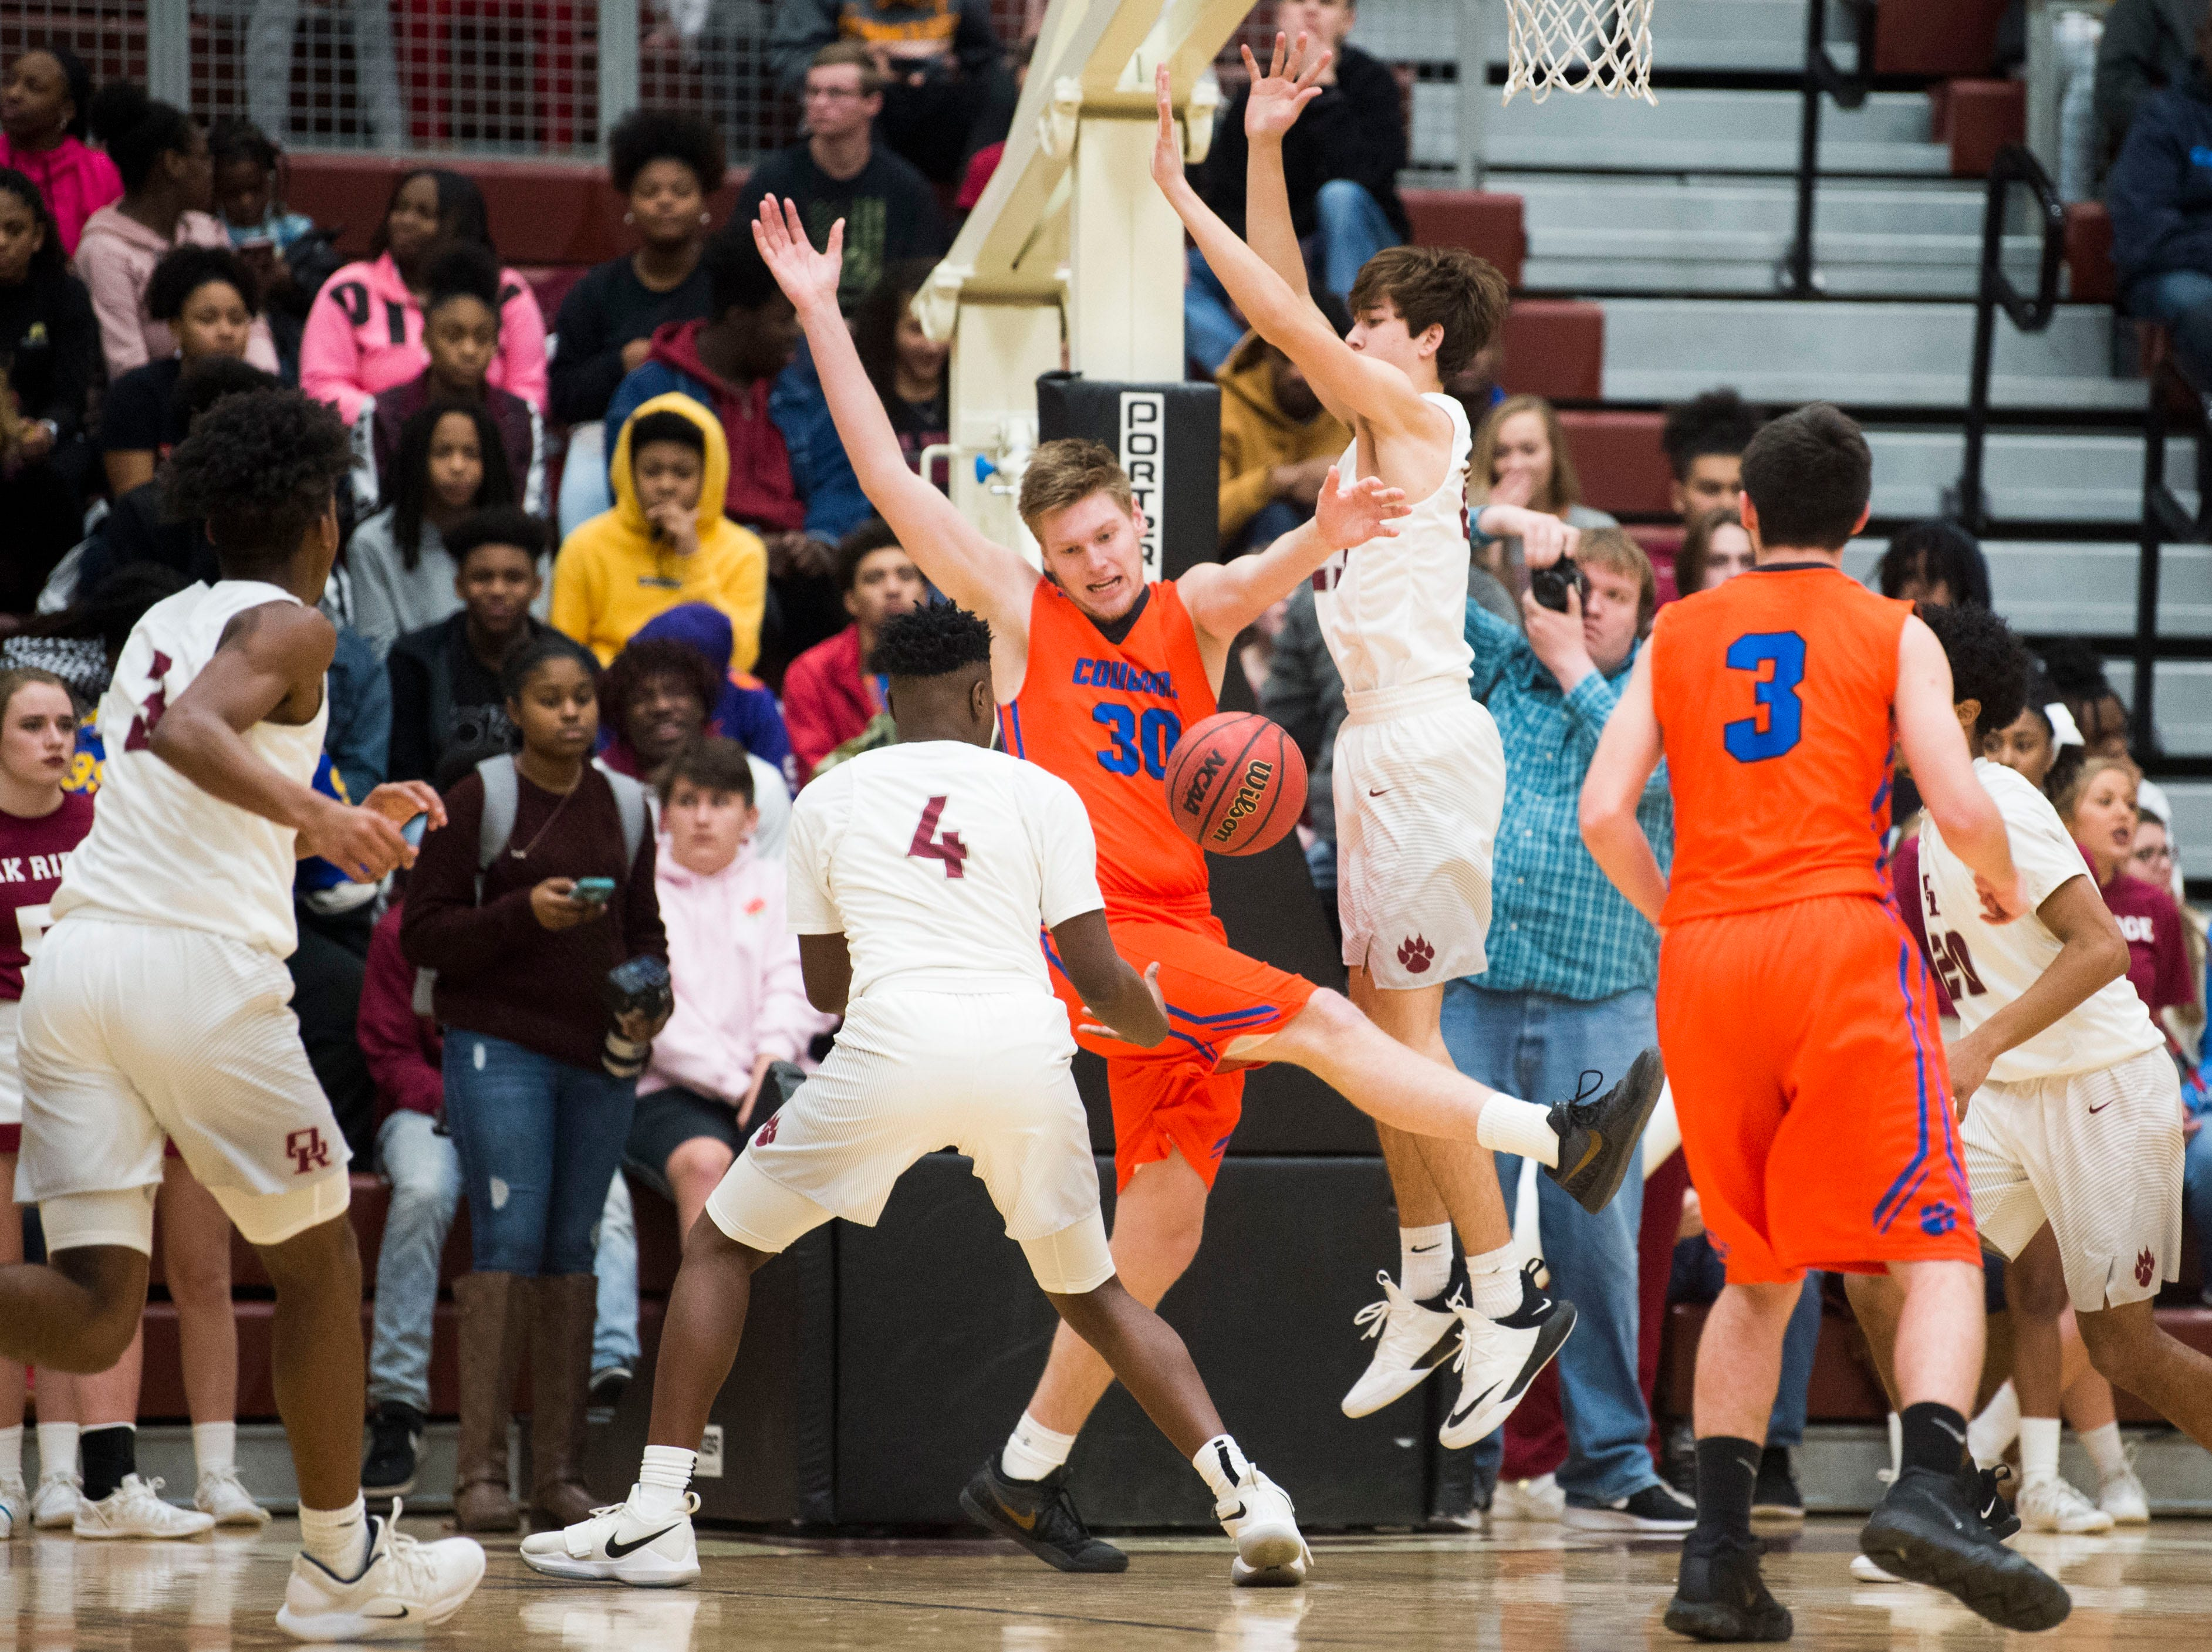 Players fight for the ball during a high school basketball game between Oak Ridge and Campbell County at Oak Ridge Friday, Feb. 1, 2019.